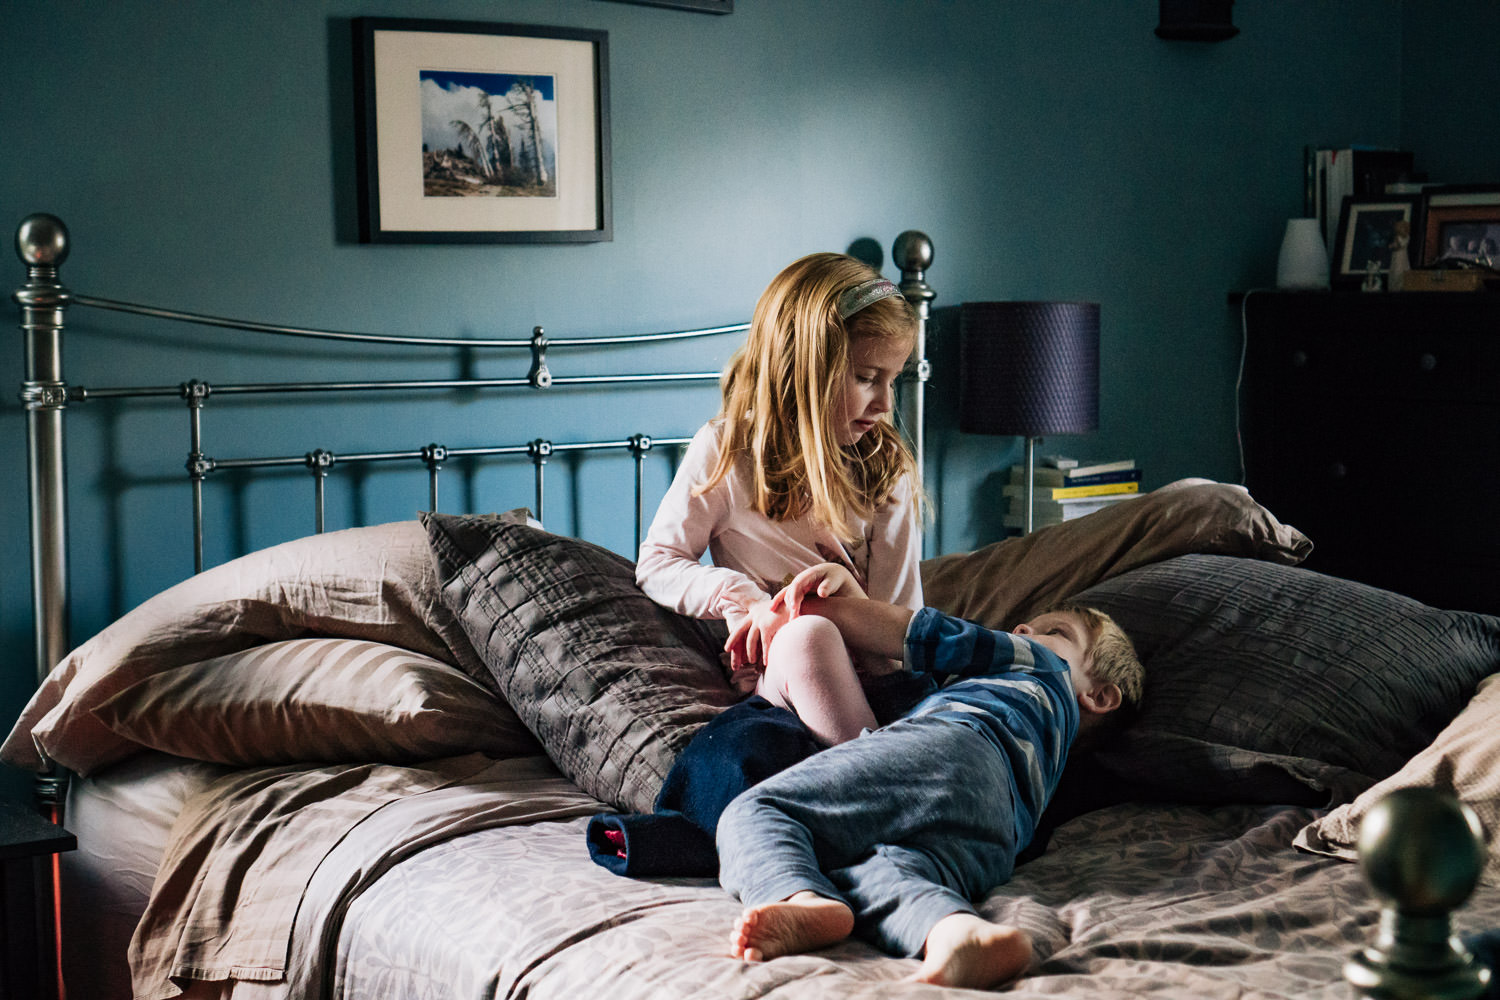 A brother and sister play on their parents' bed.